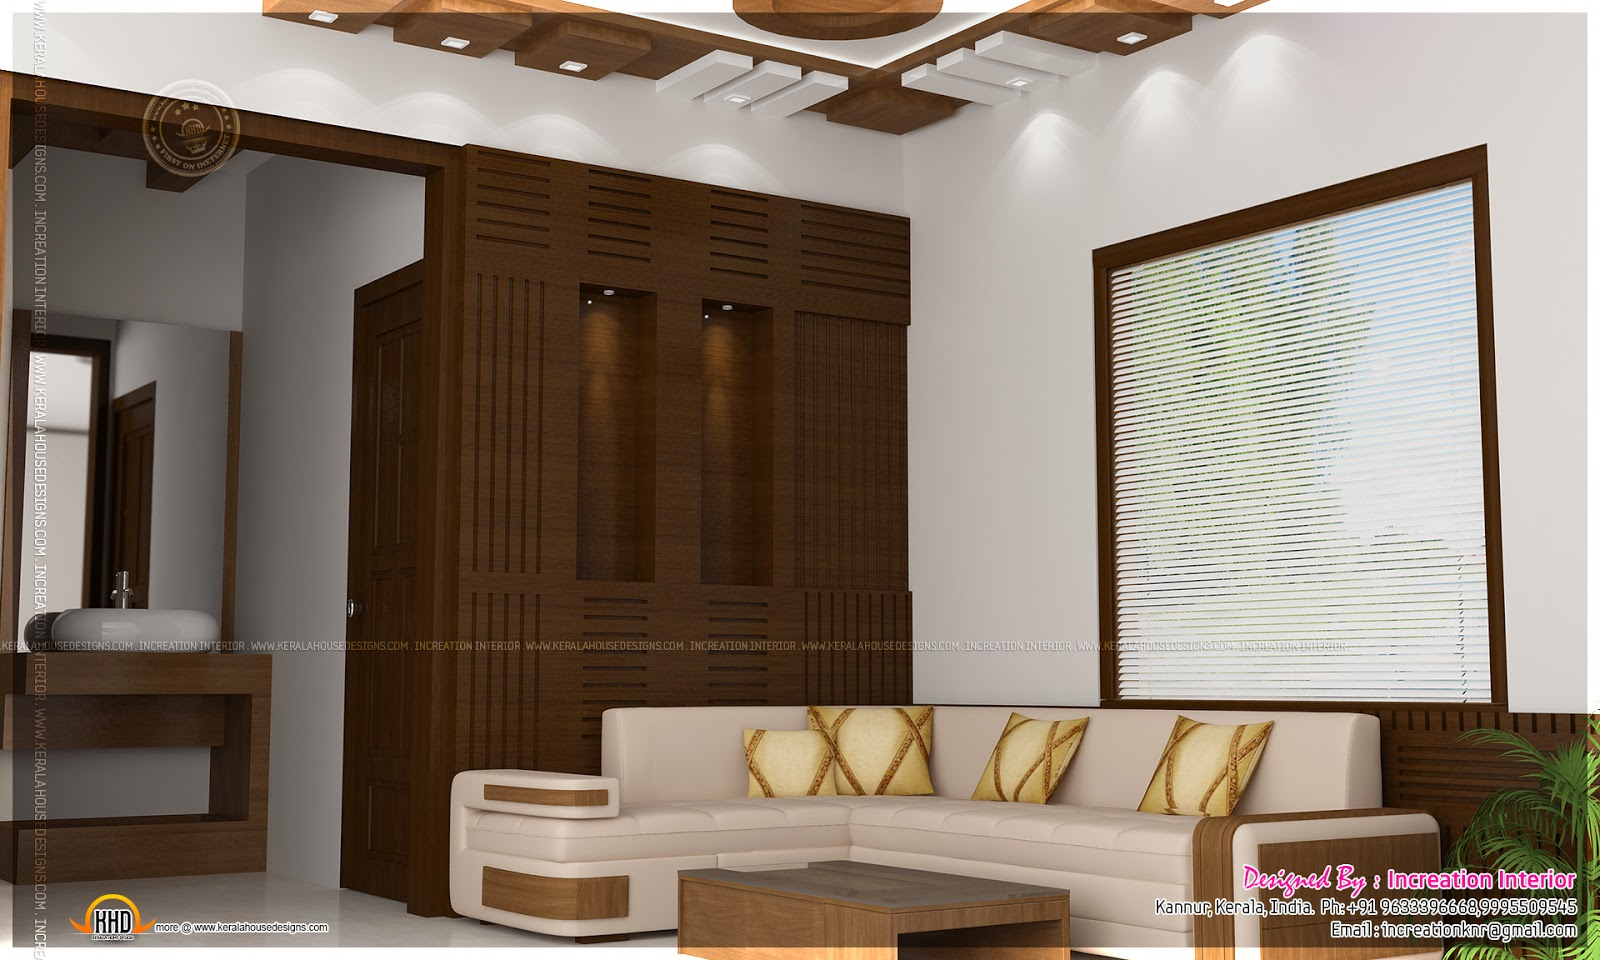 Interior design ideas by increation interior kerala for Kerala interior designs